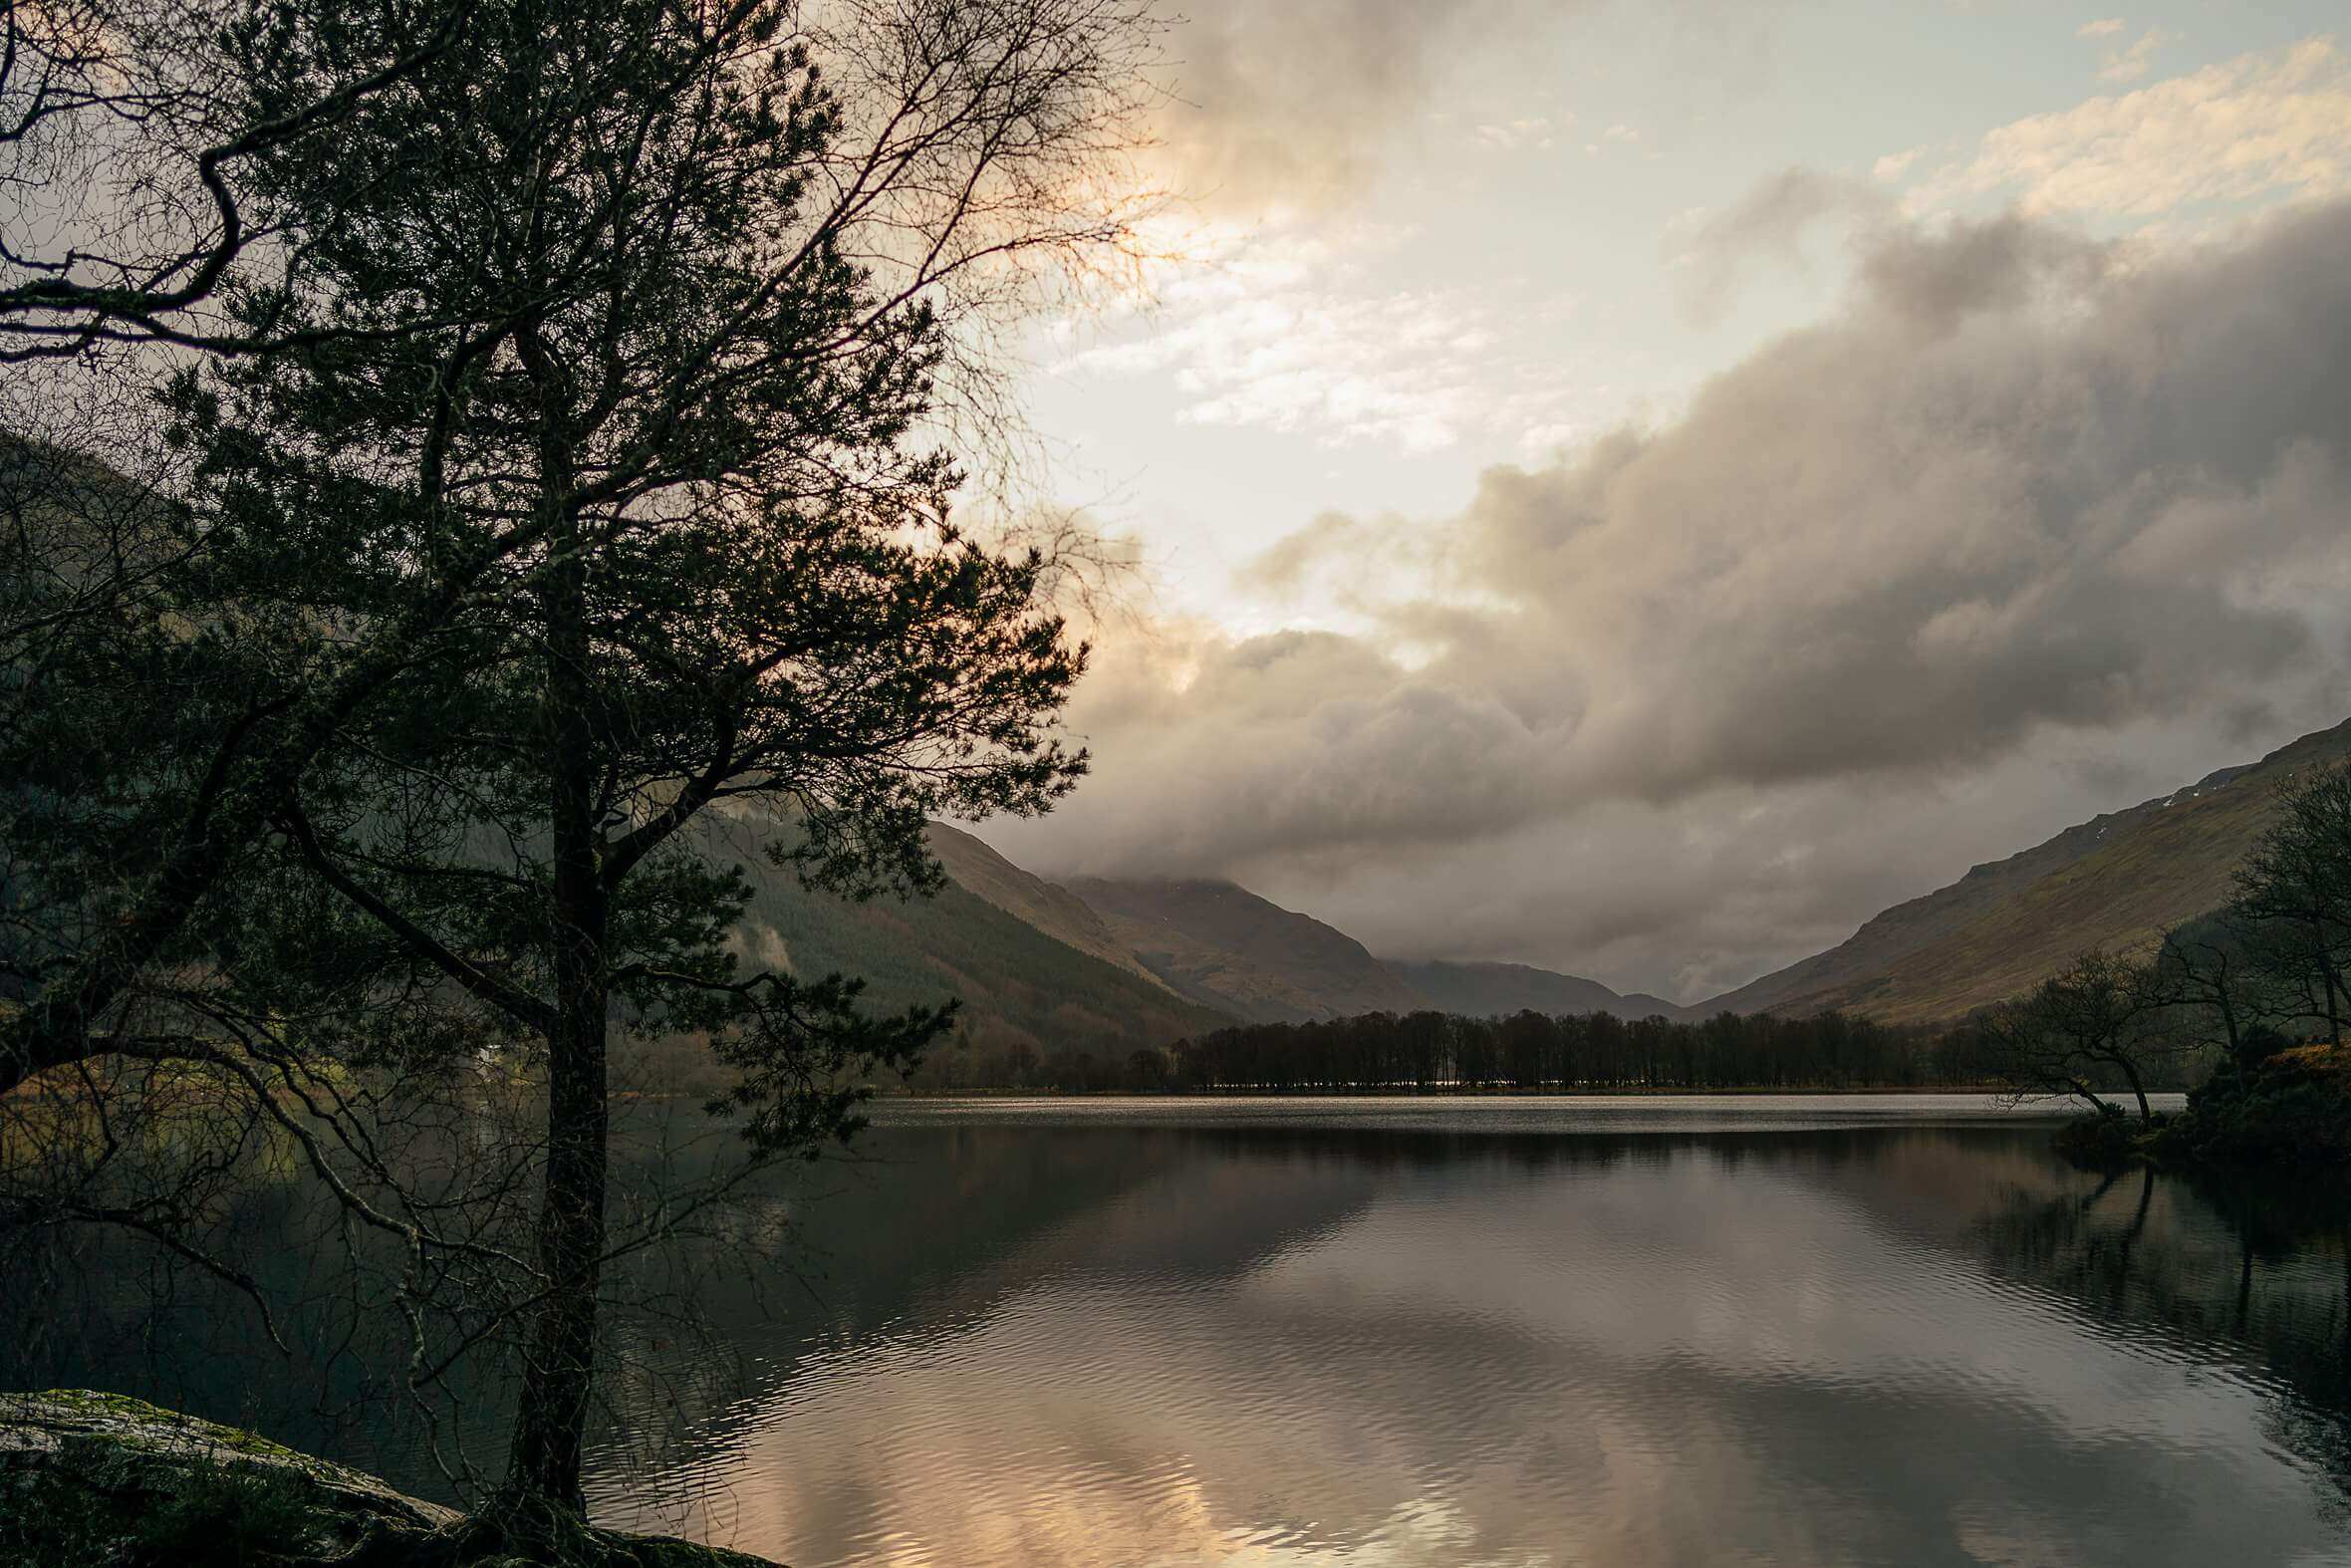 monachyle mhor micro wedding scotland view across loch voil leaving hotel sunset December scottish landscape